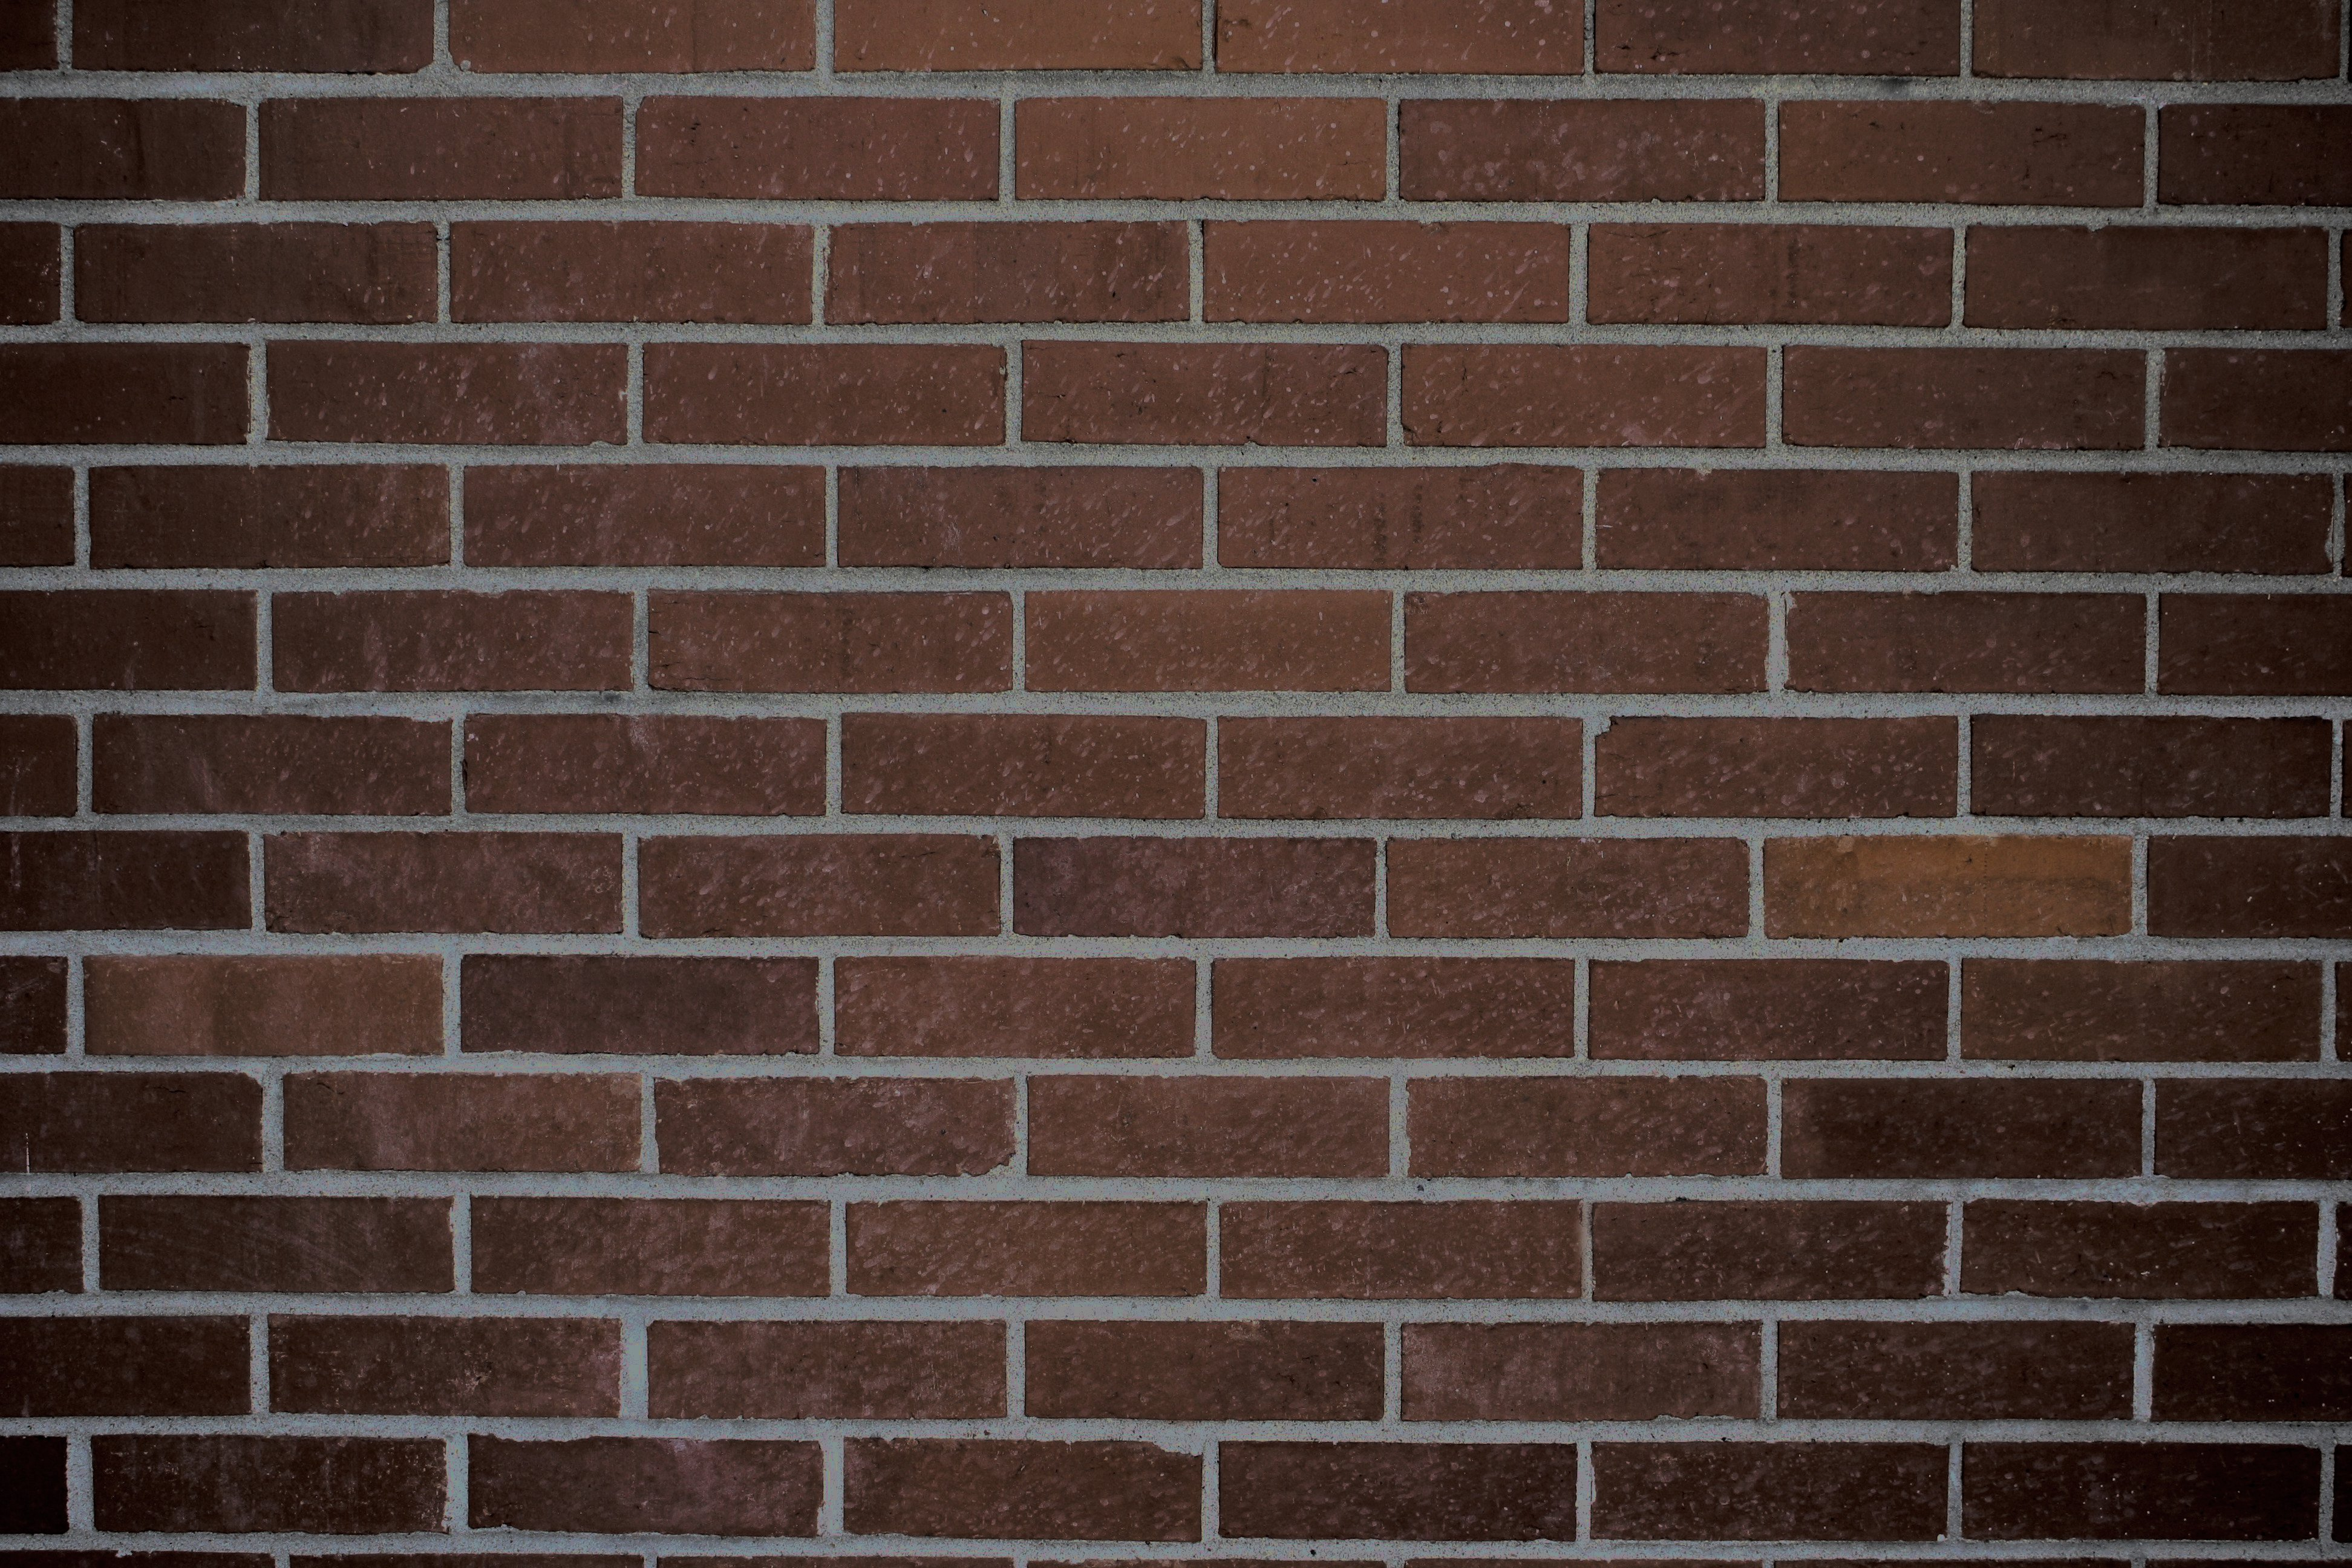 Dark brown brick wall texture picture free photograph for Brown wallpaper for walls